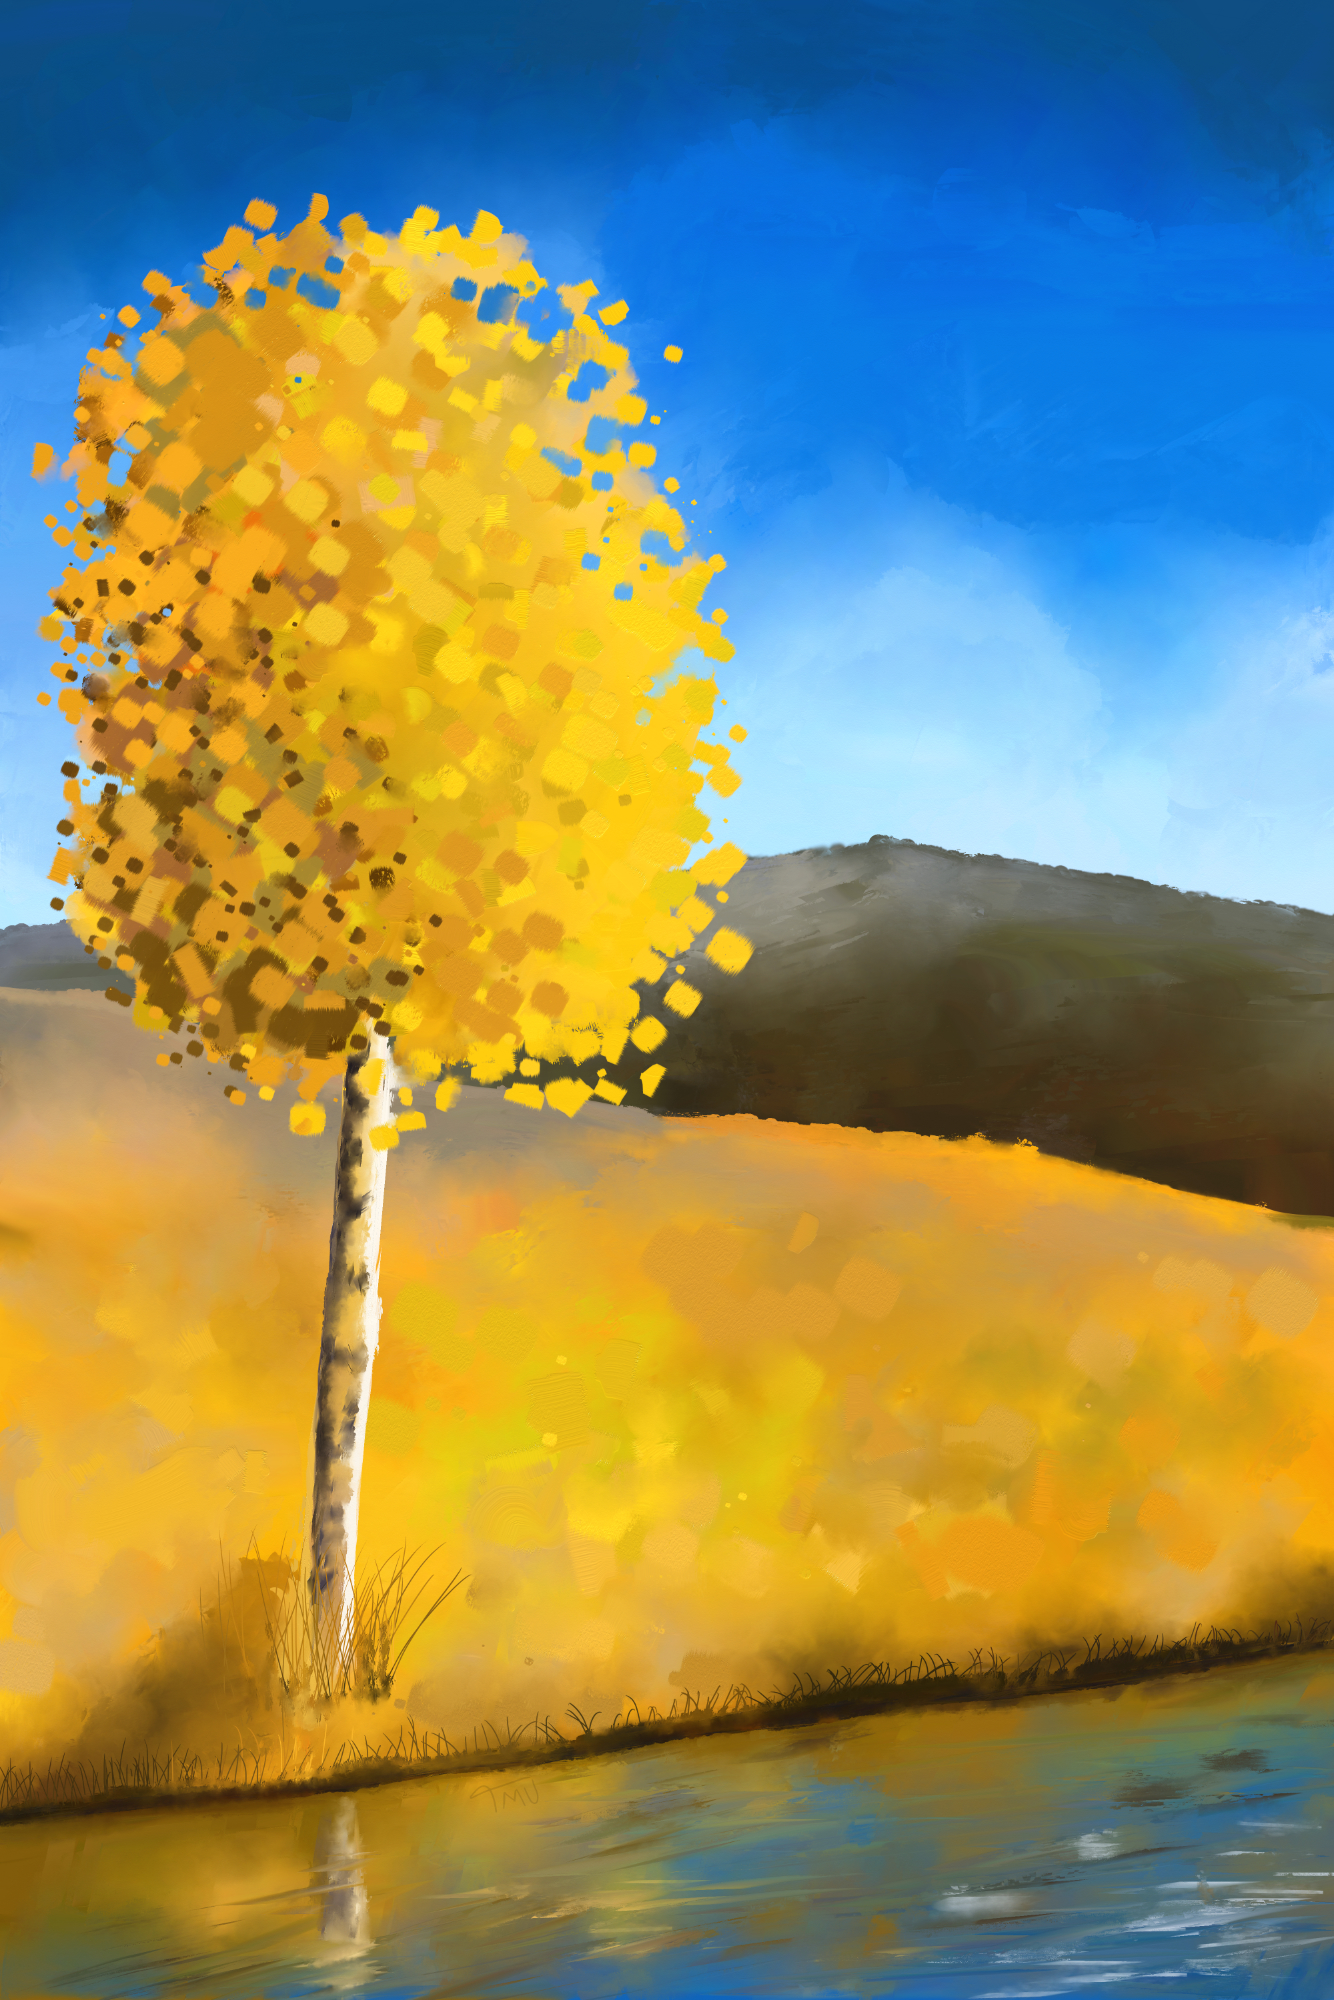 Digital acrylic painting of a Yellow autumn day